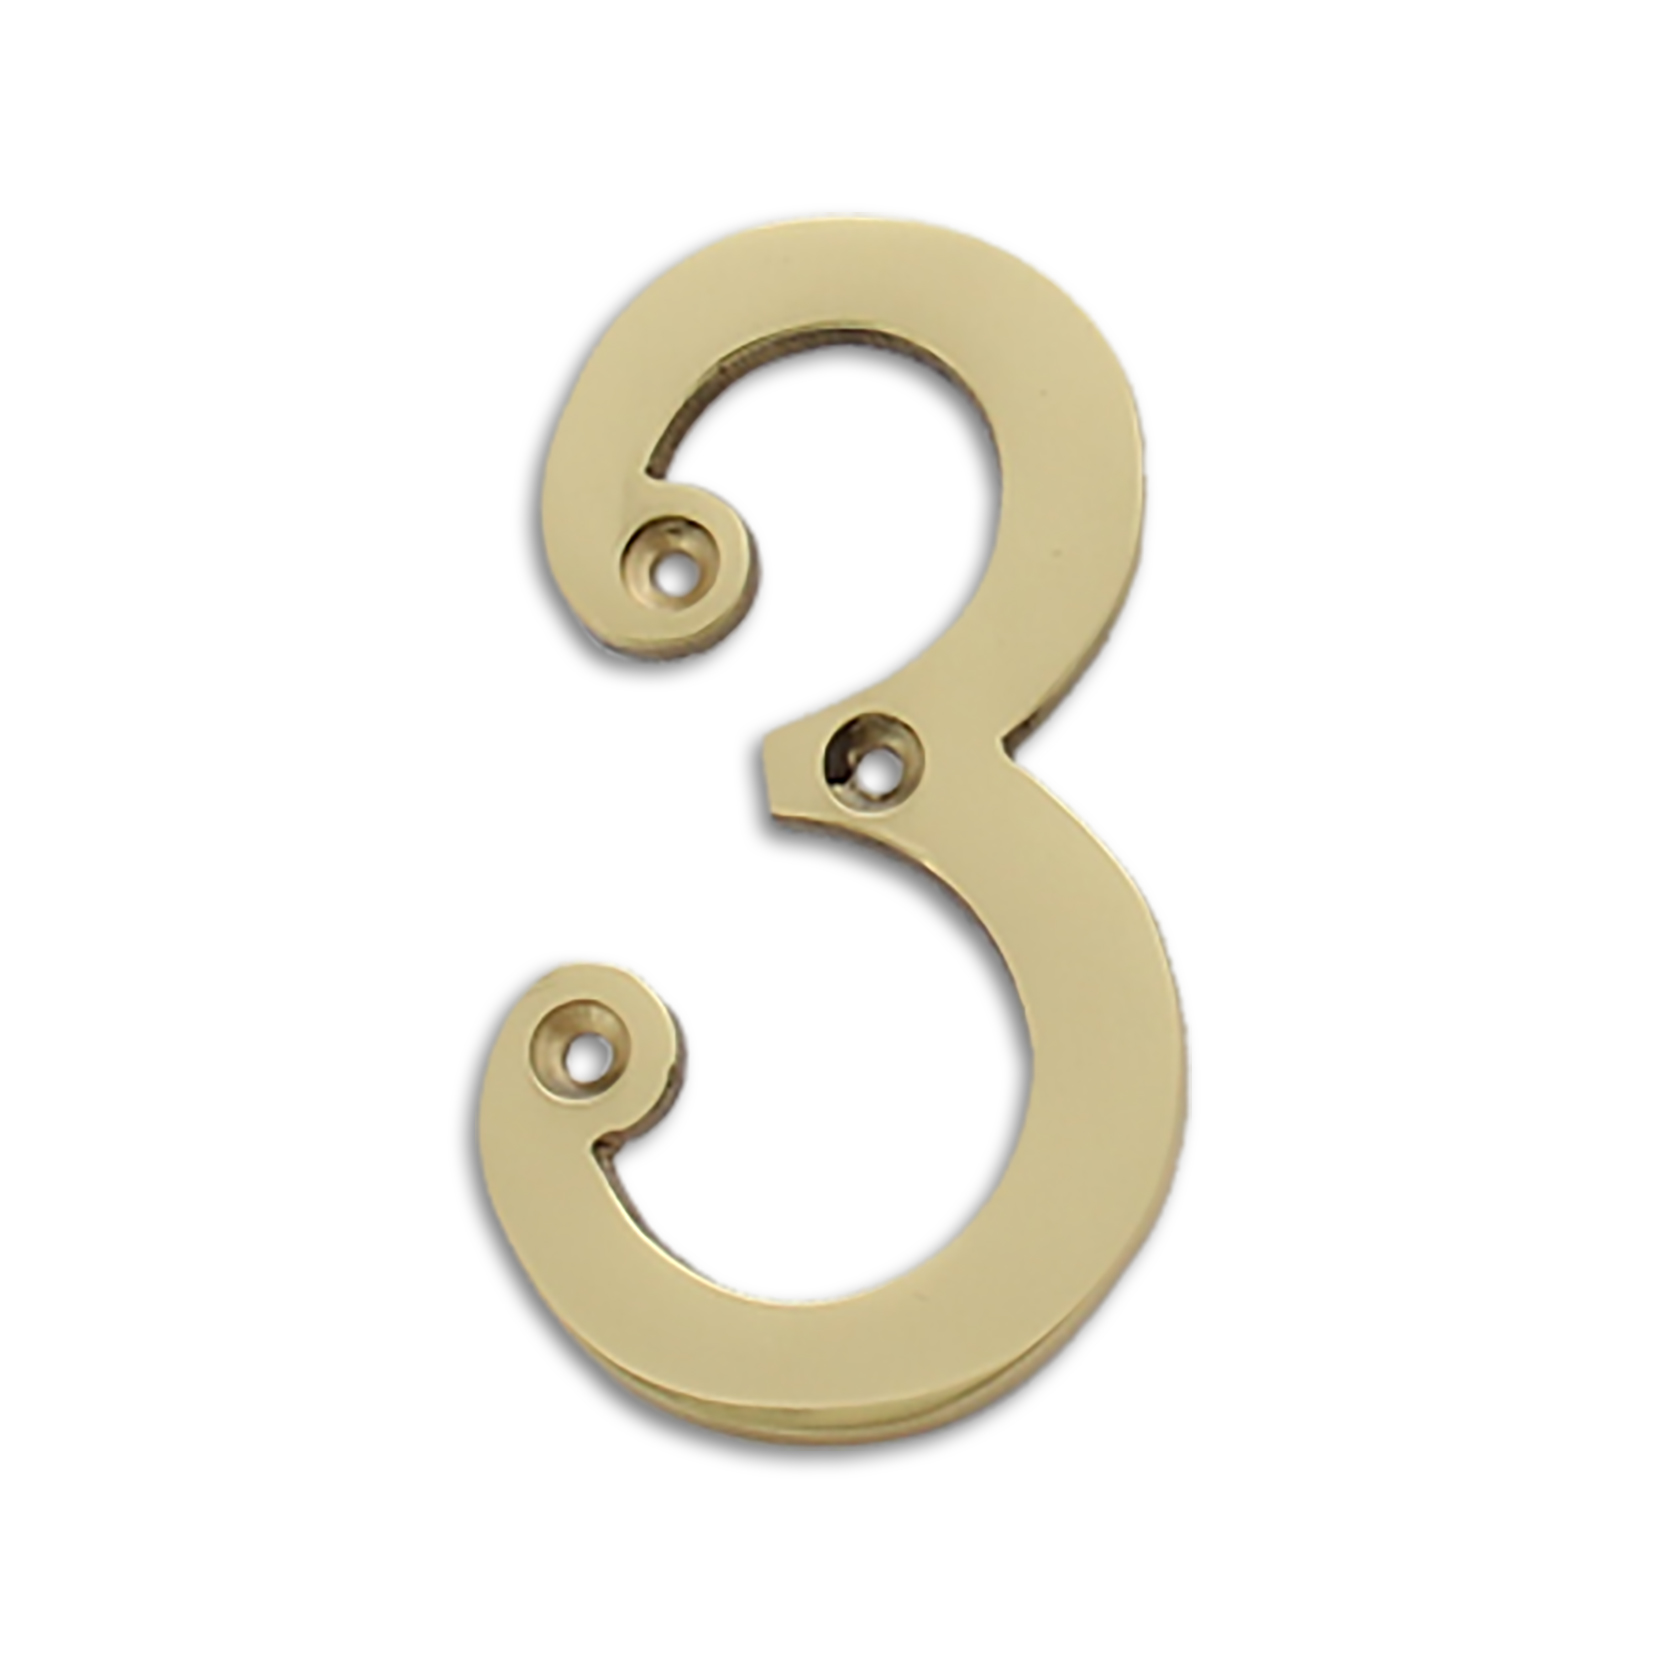 polished brass 4 inch house numbers letters rch supply co With 4 inch house numbers and letters